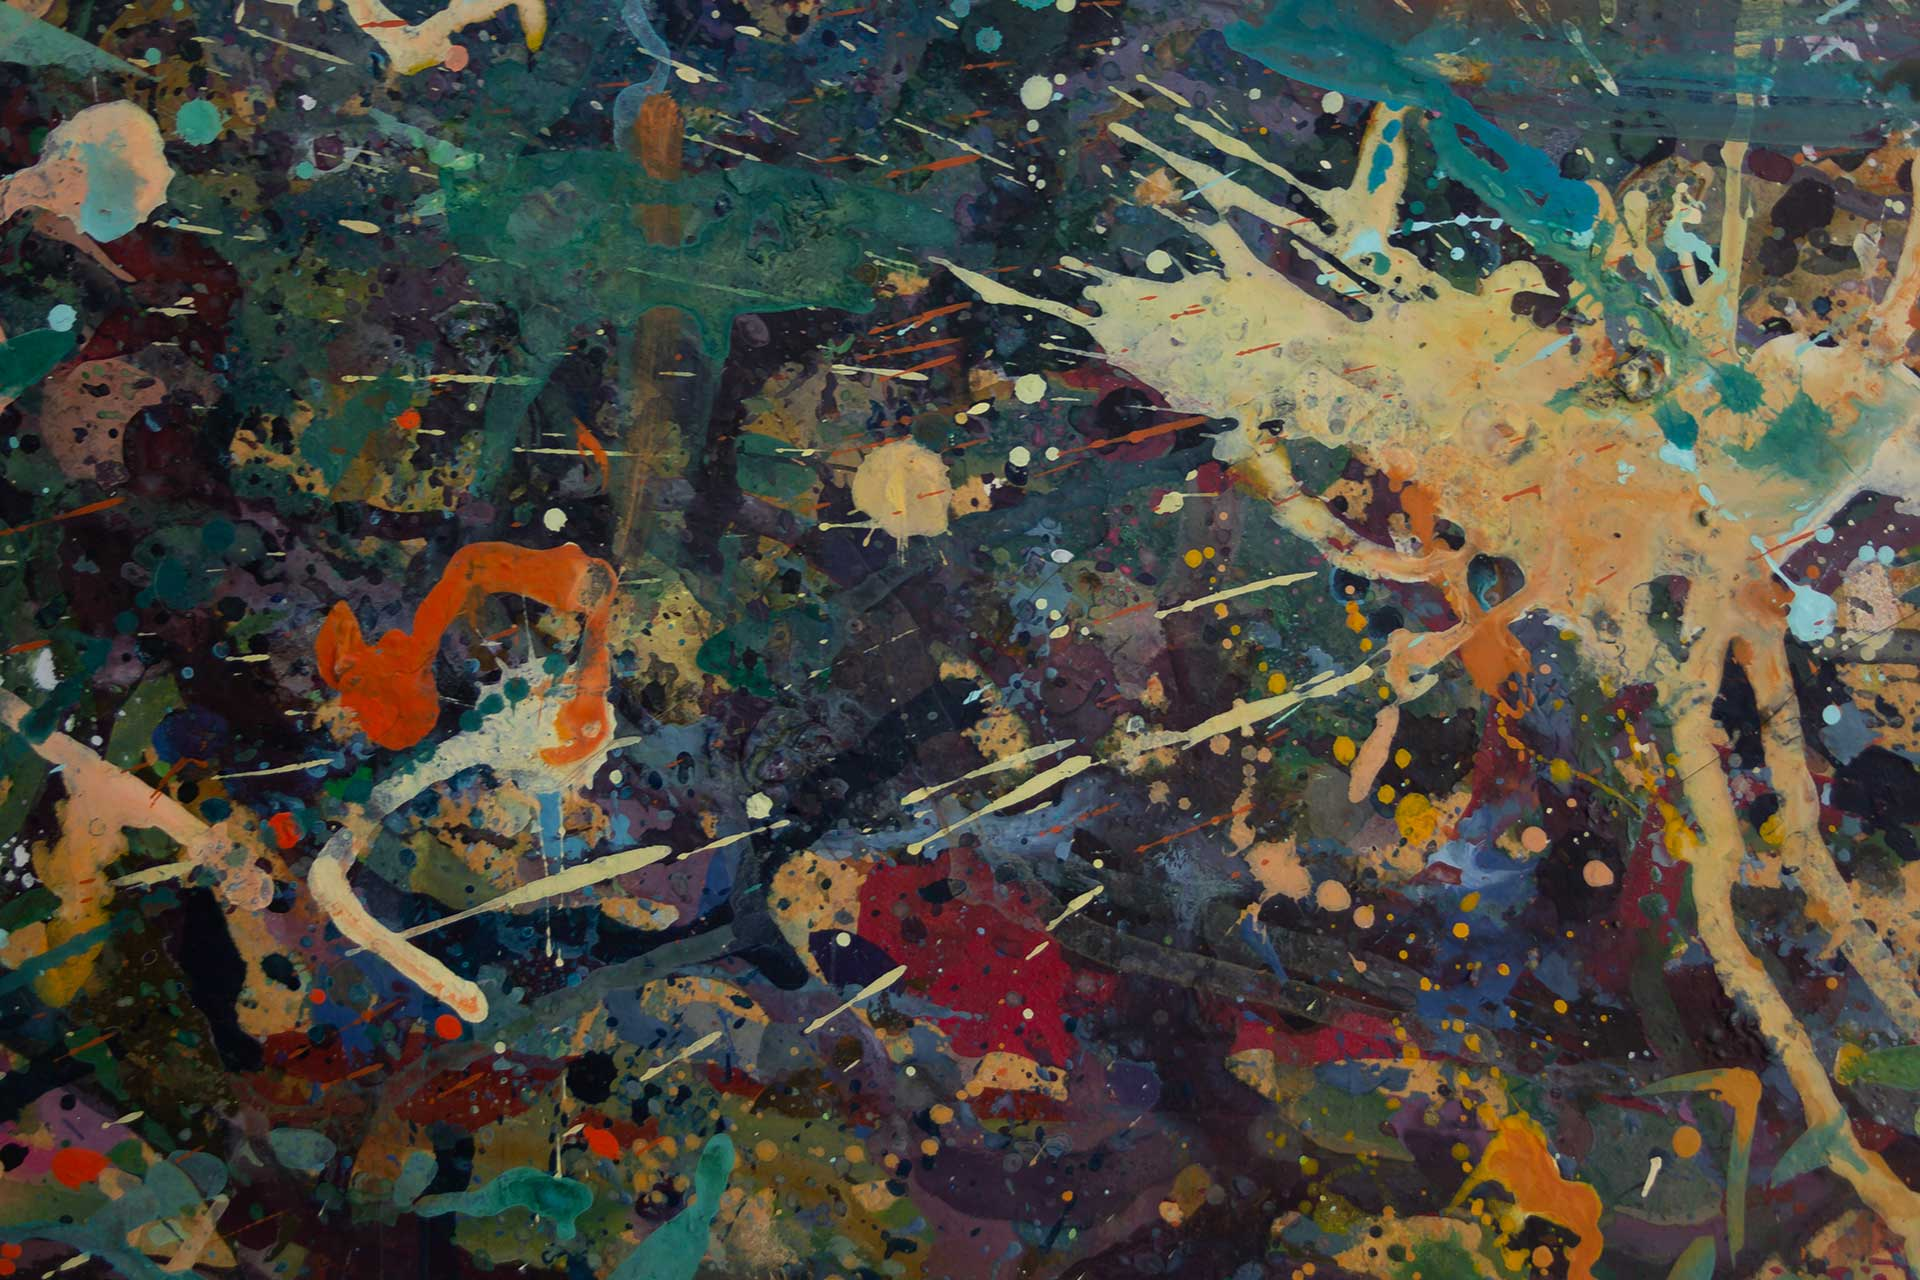 Abstract expressionism painting - Alien teddy bear dance party - Detail 2